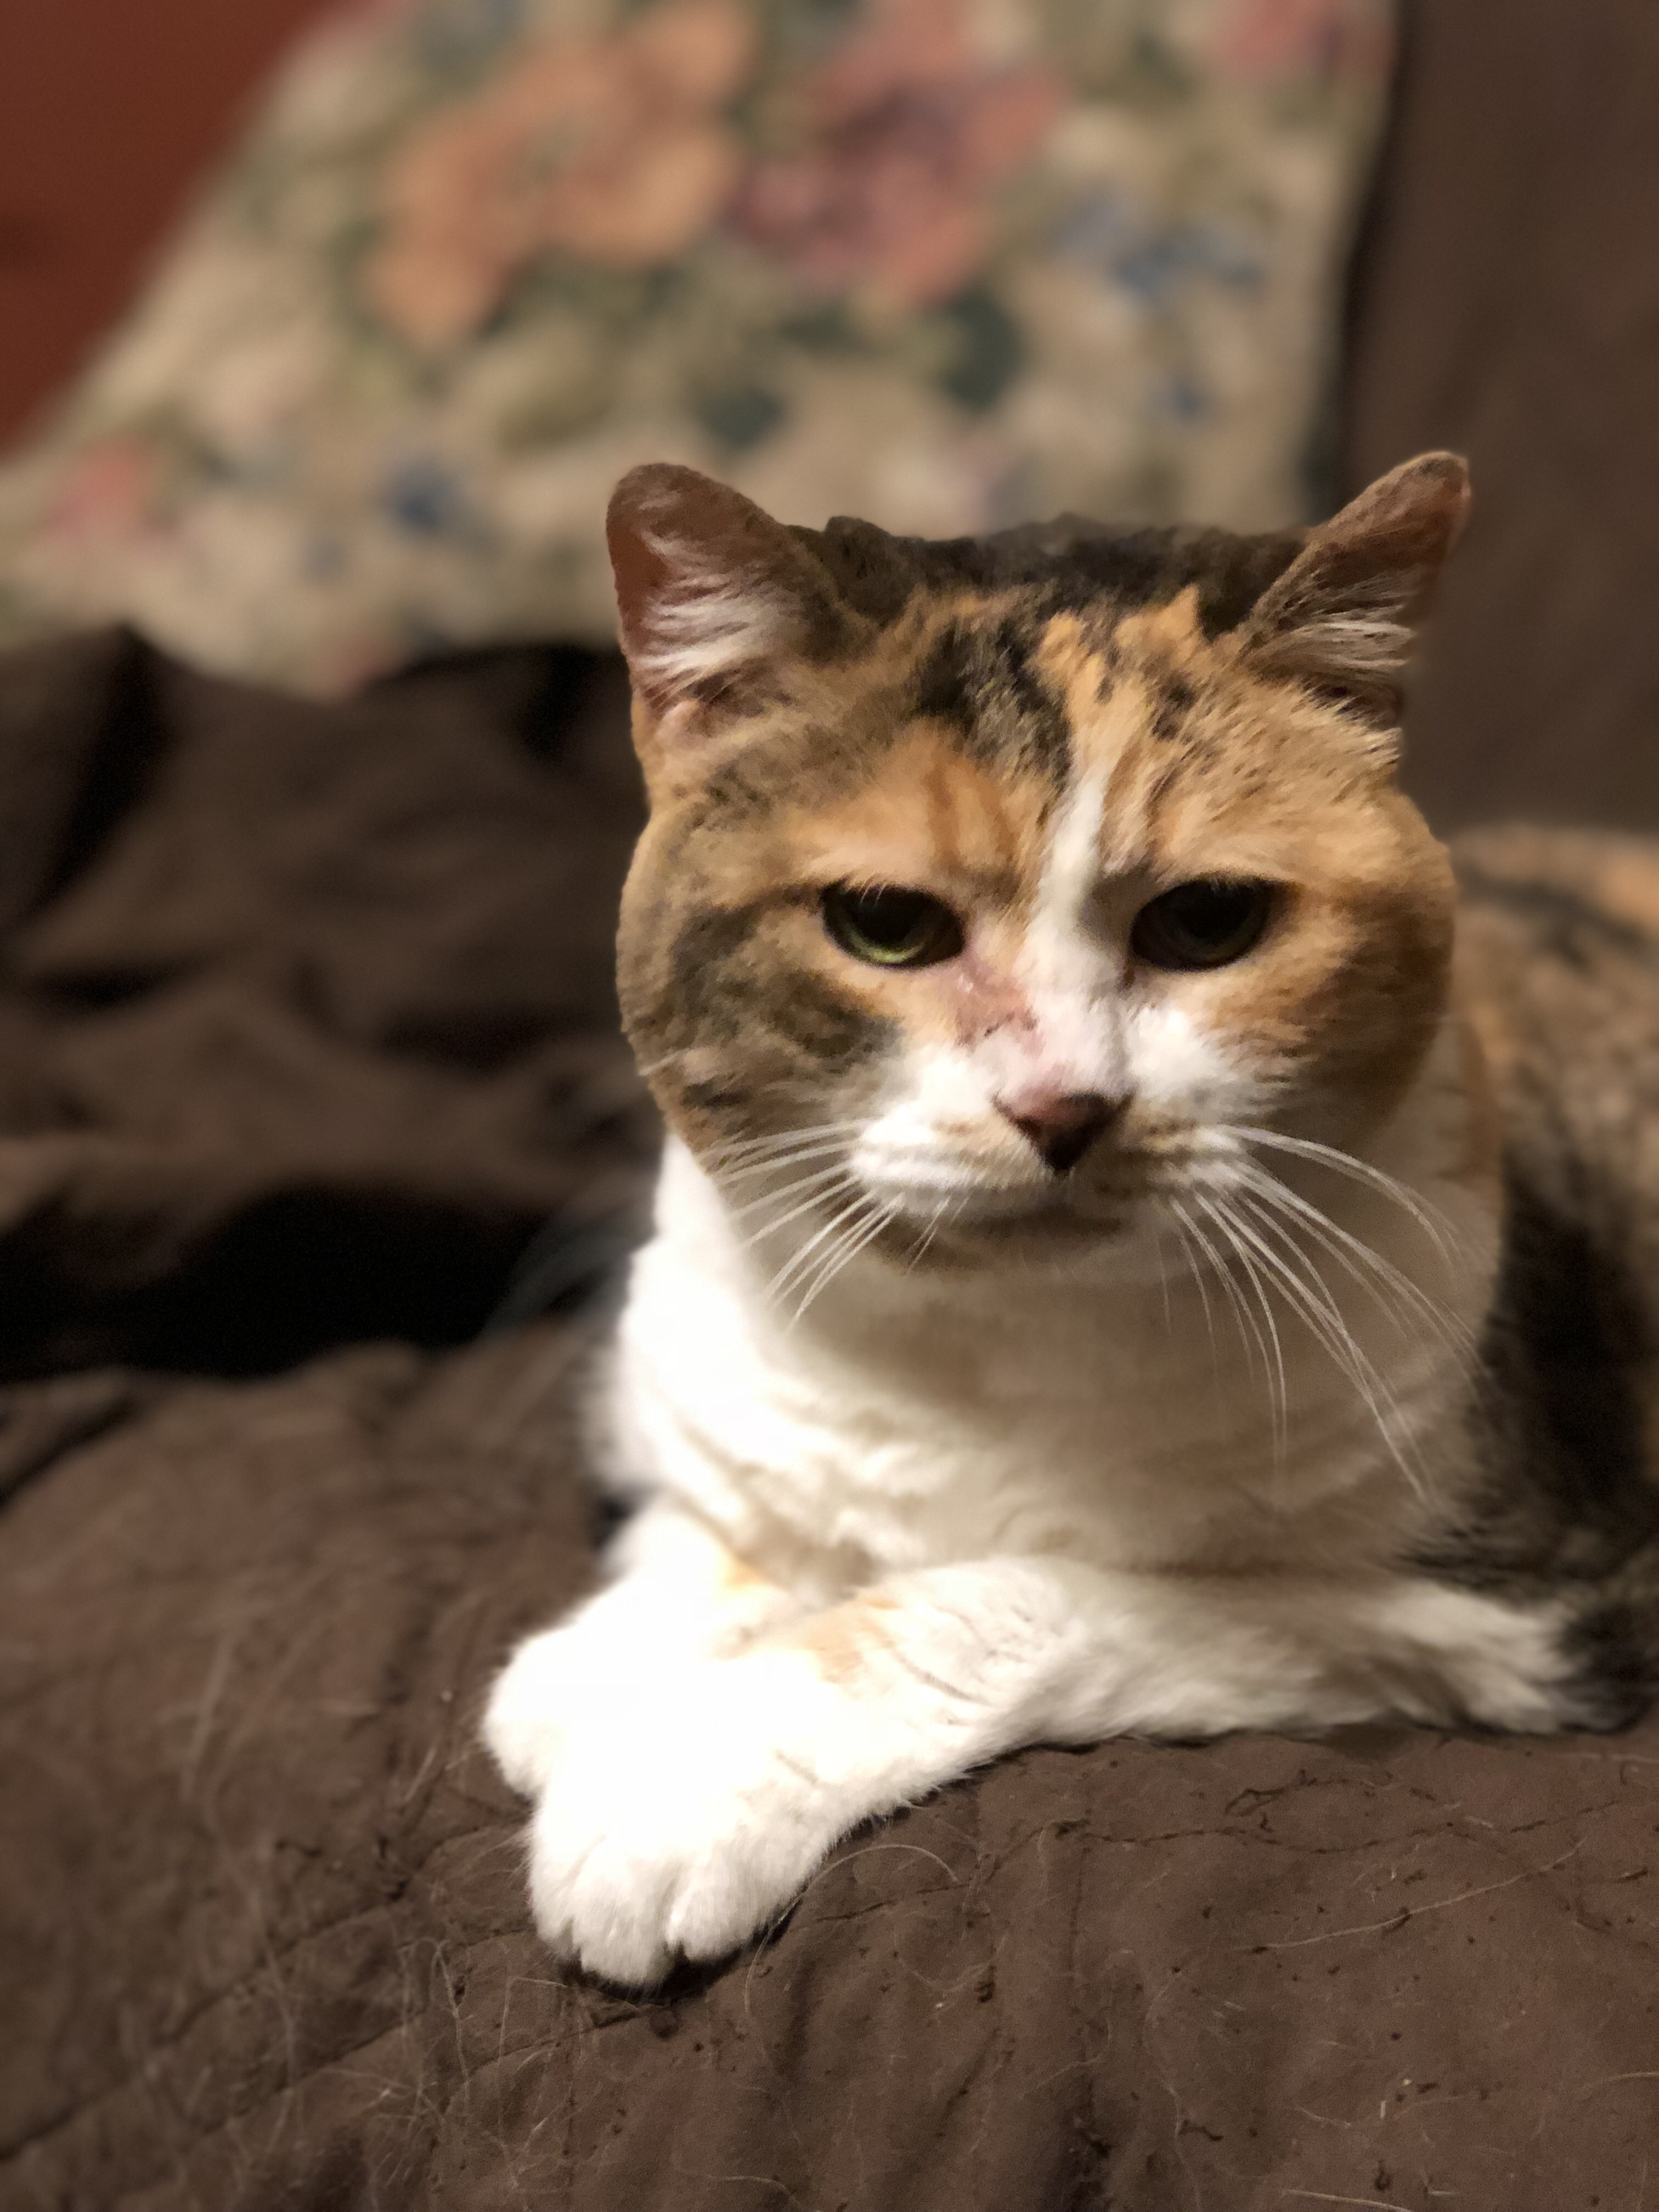 Calico Cat Looking Thoughtful